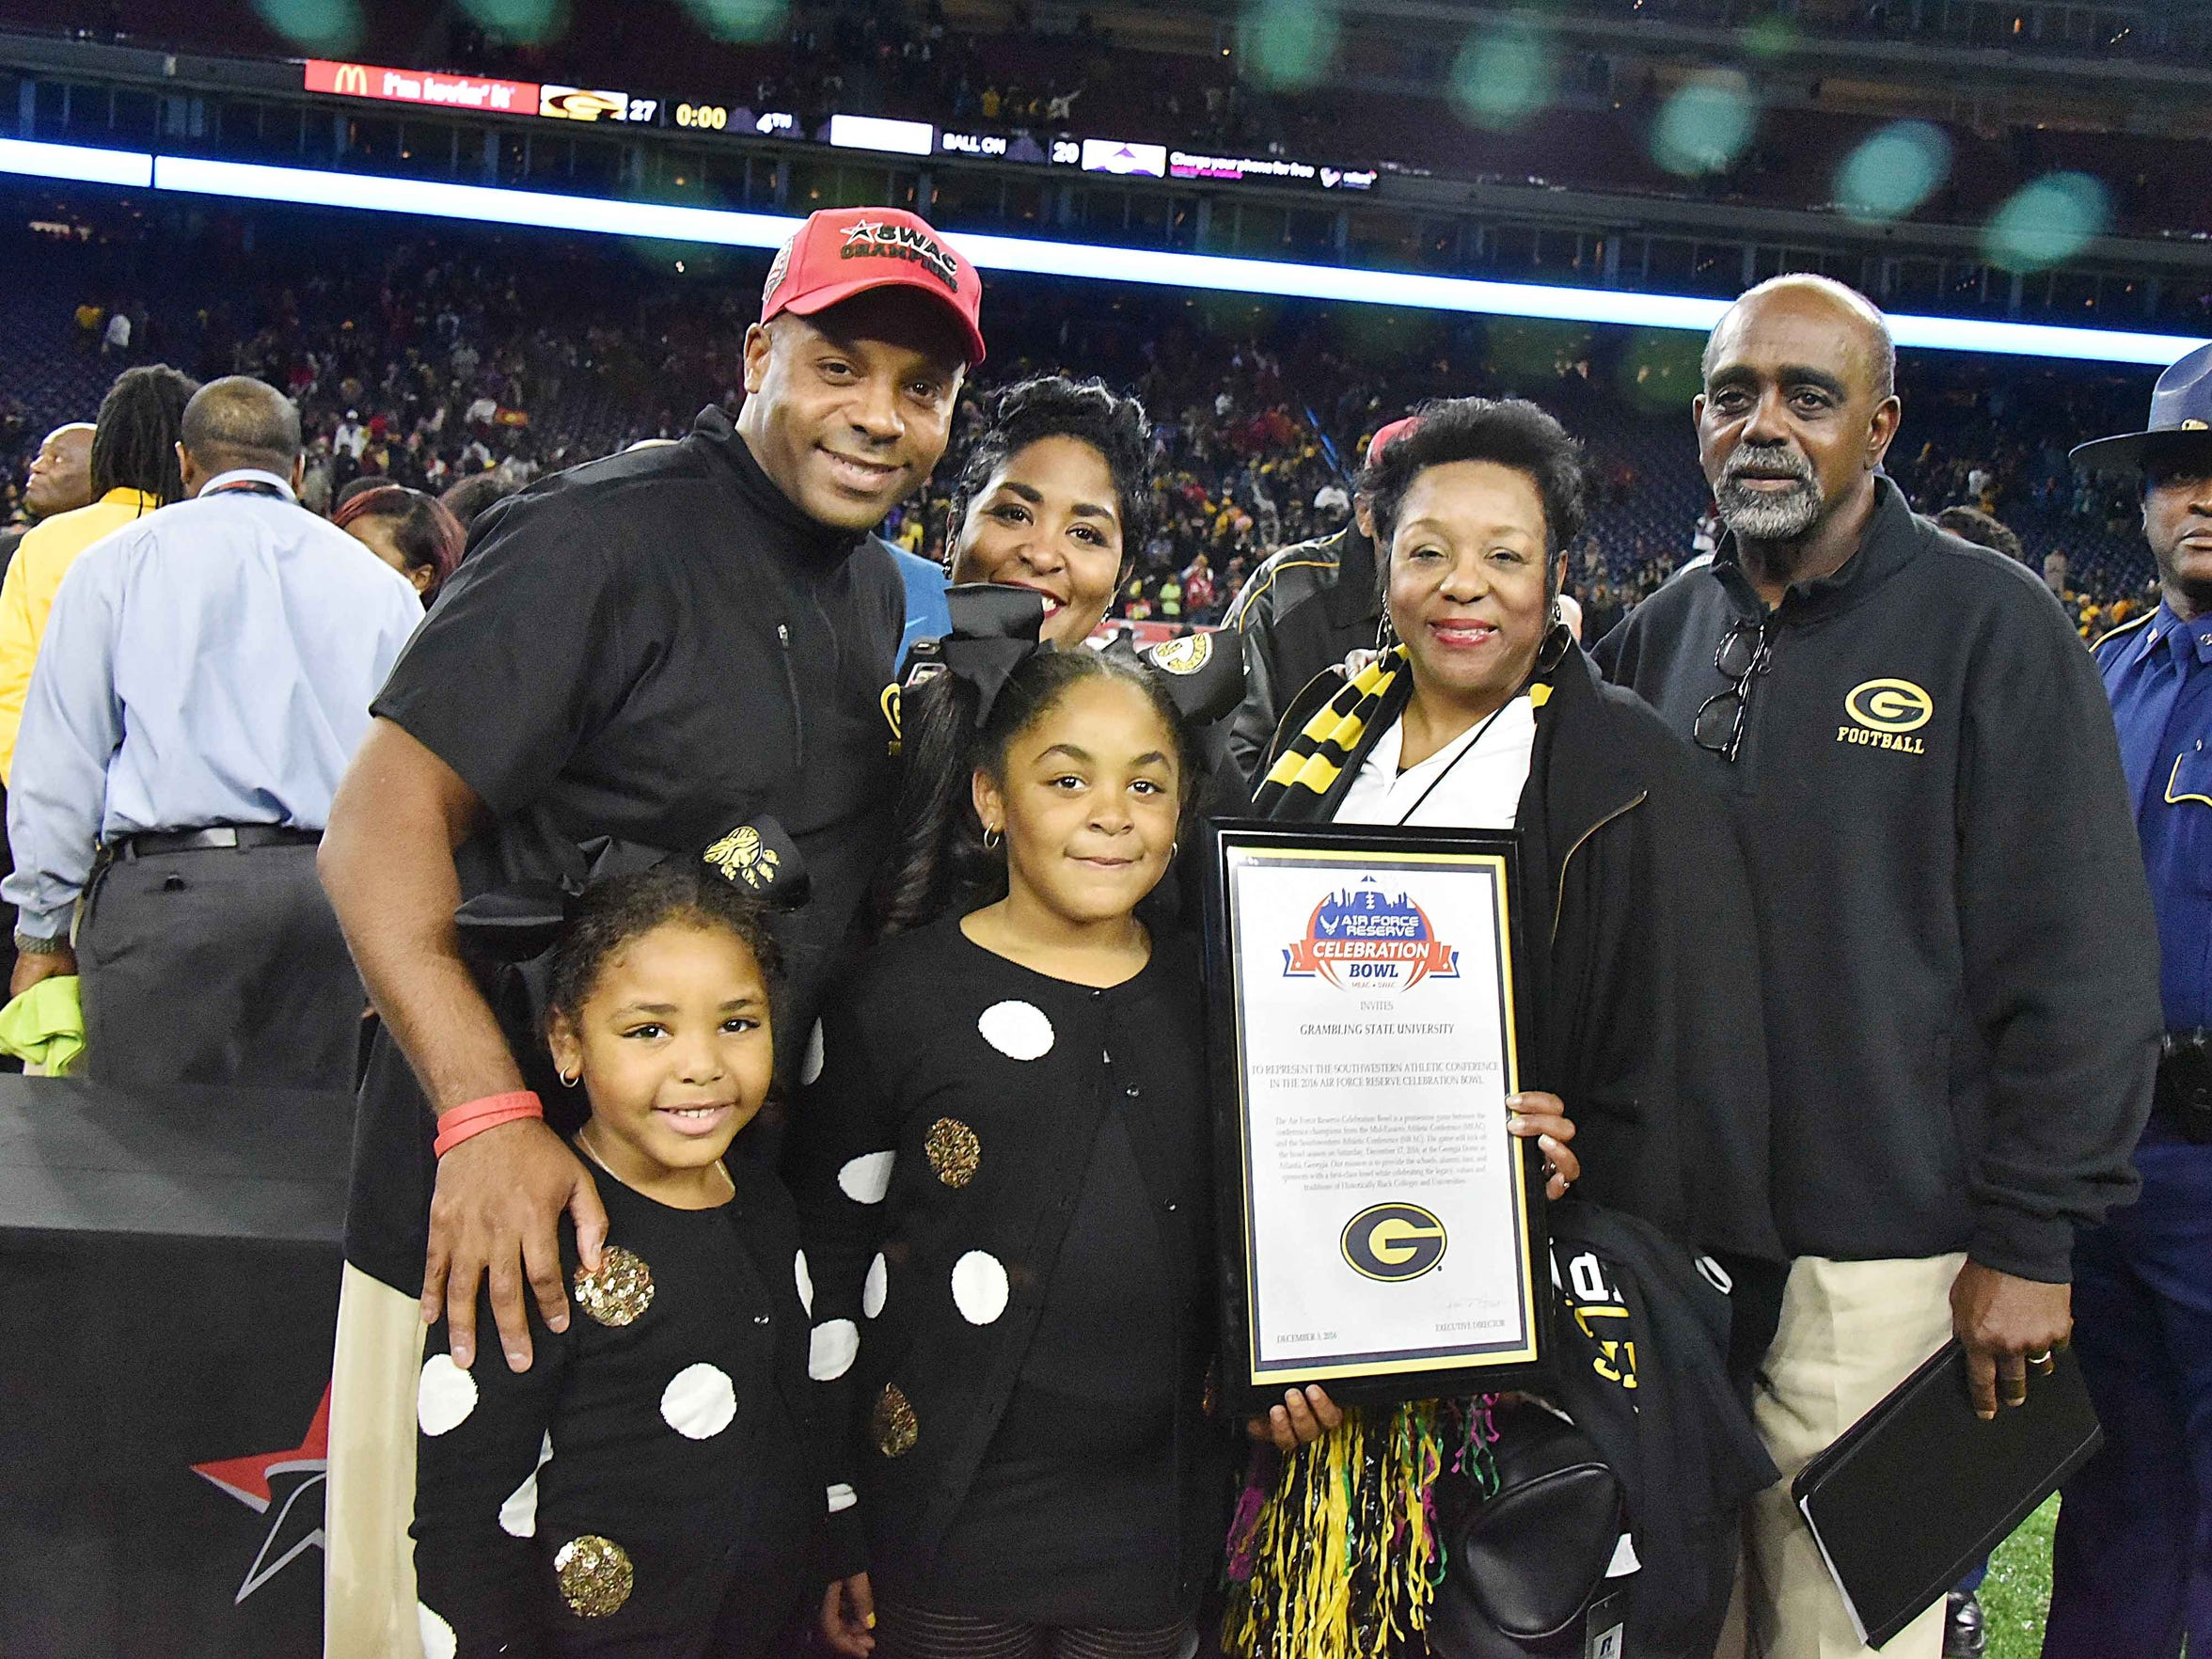 Grambling coach Broderick Fobbs is pictured with his